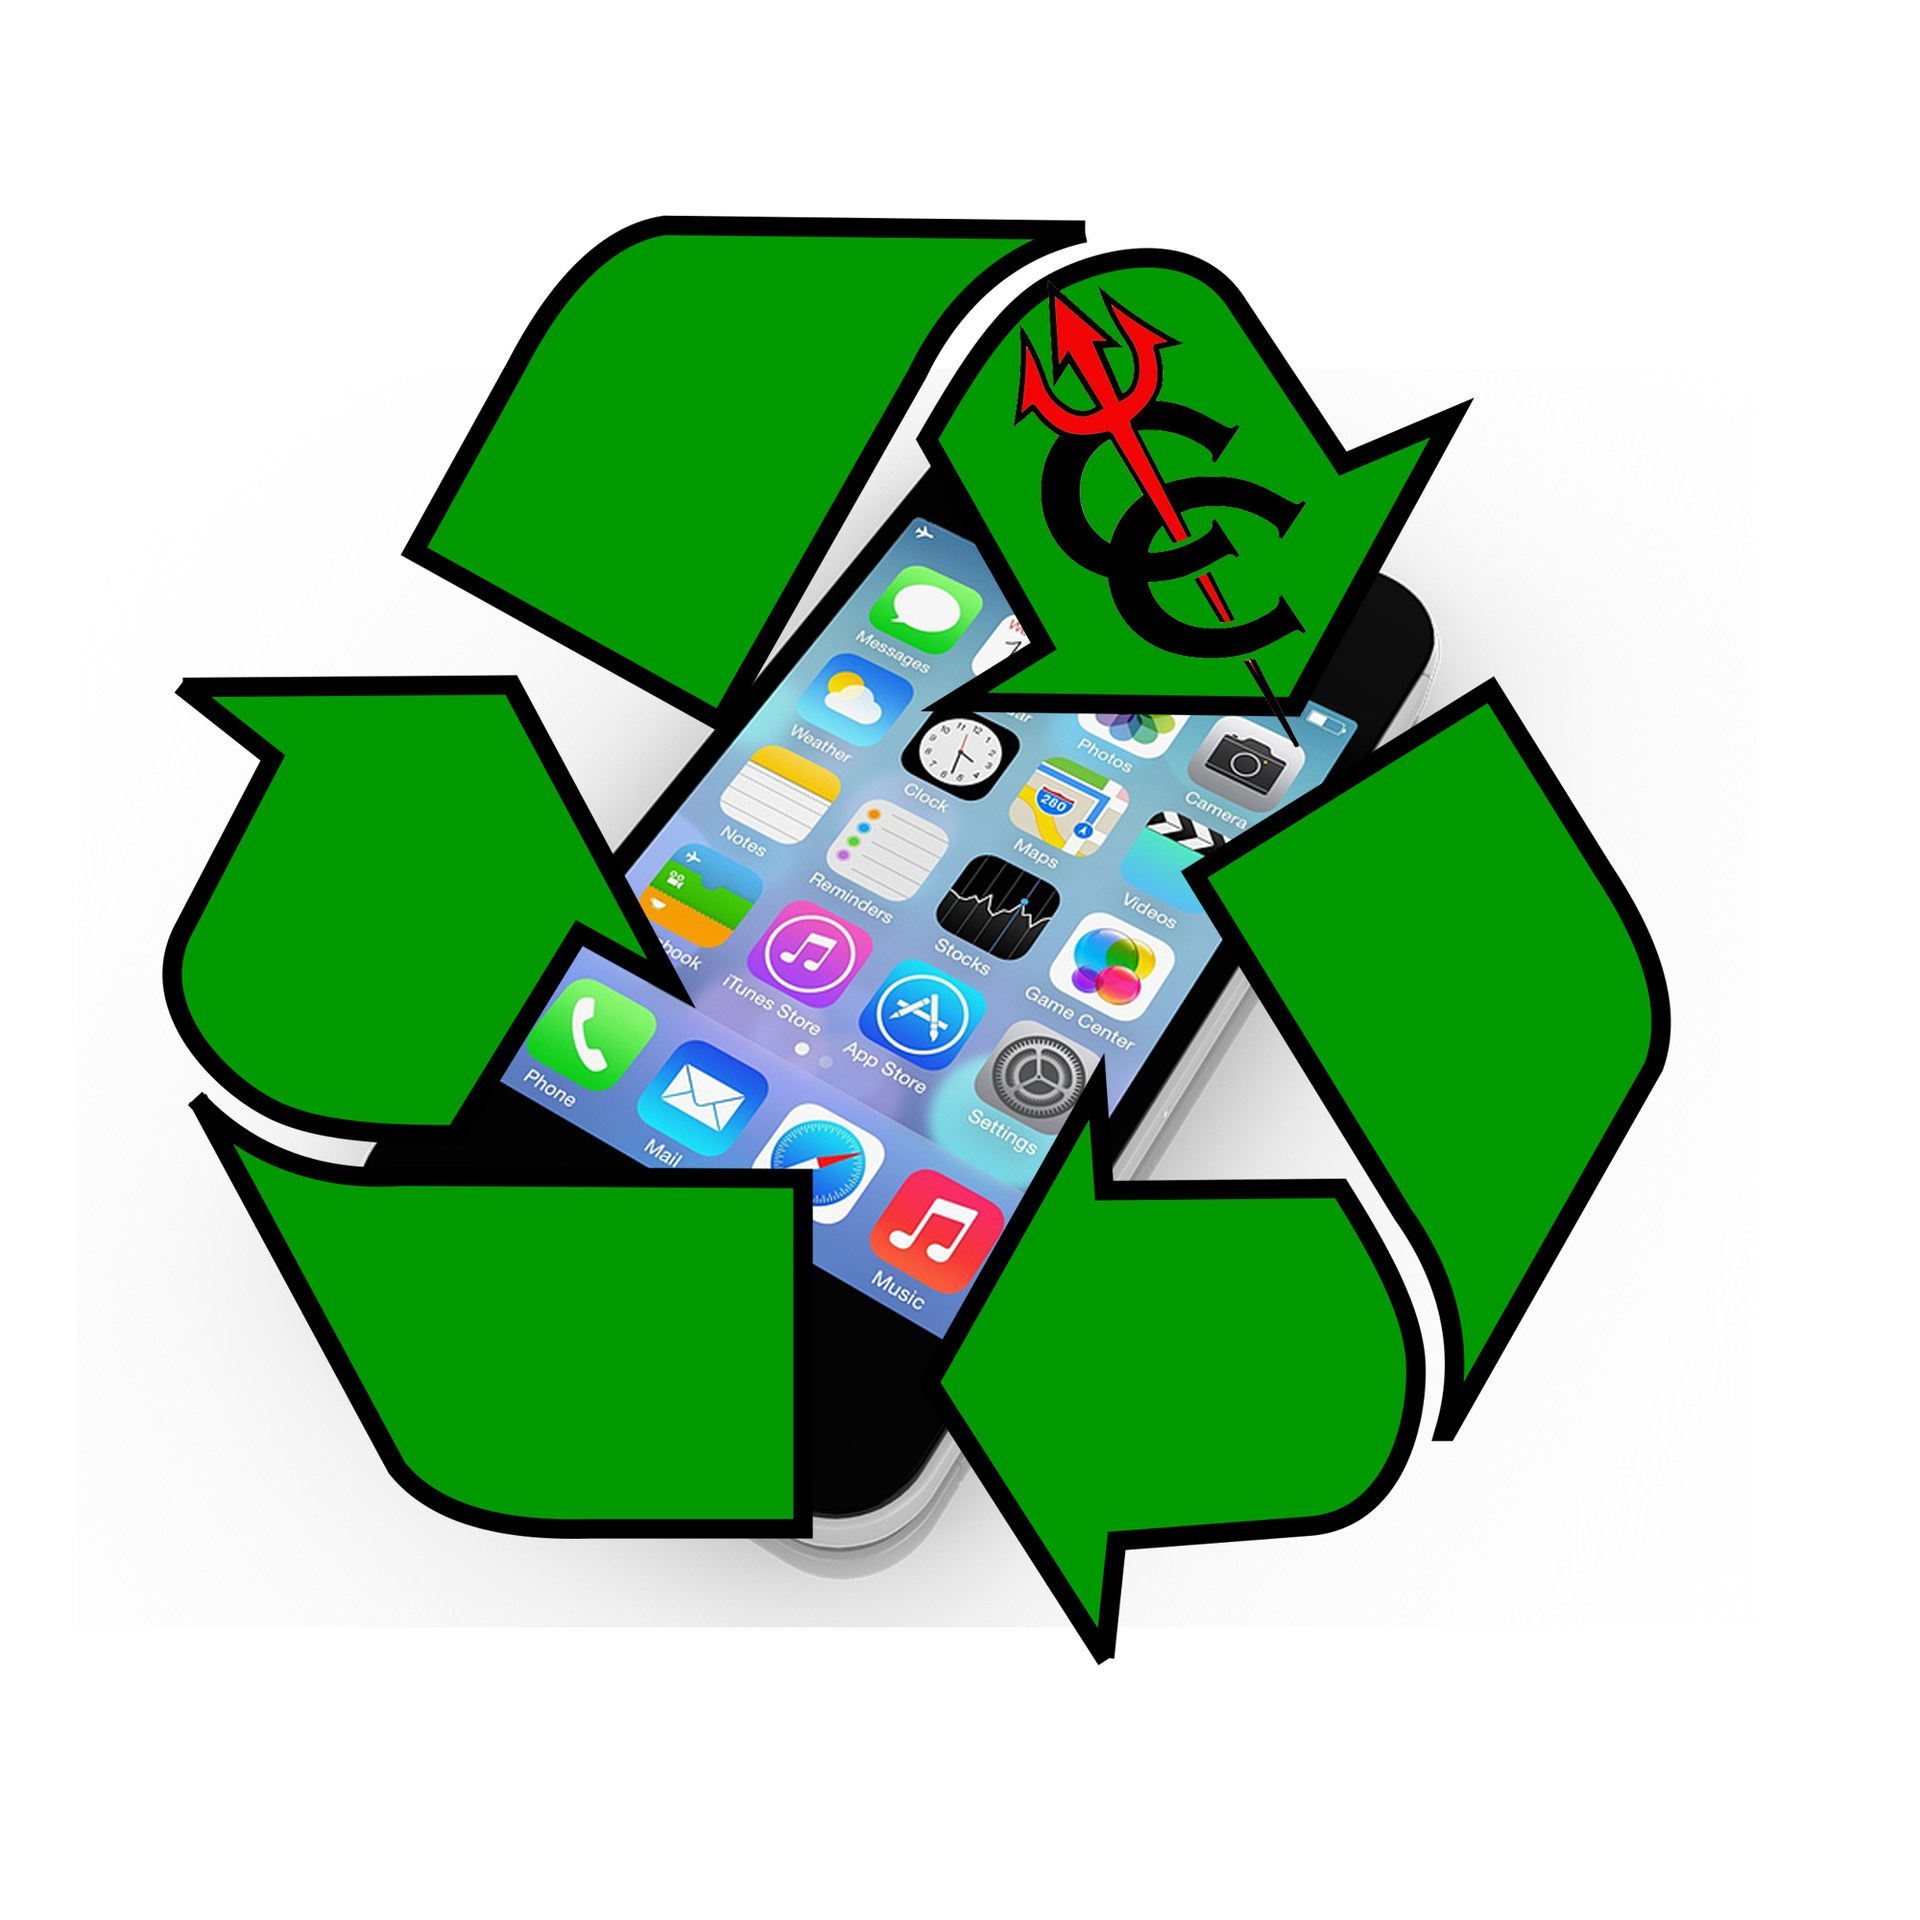 cc recycle logo